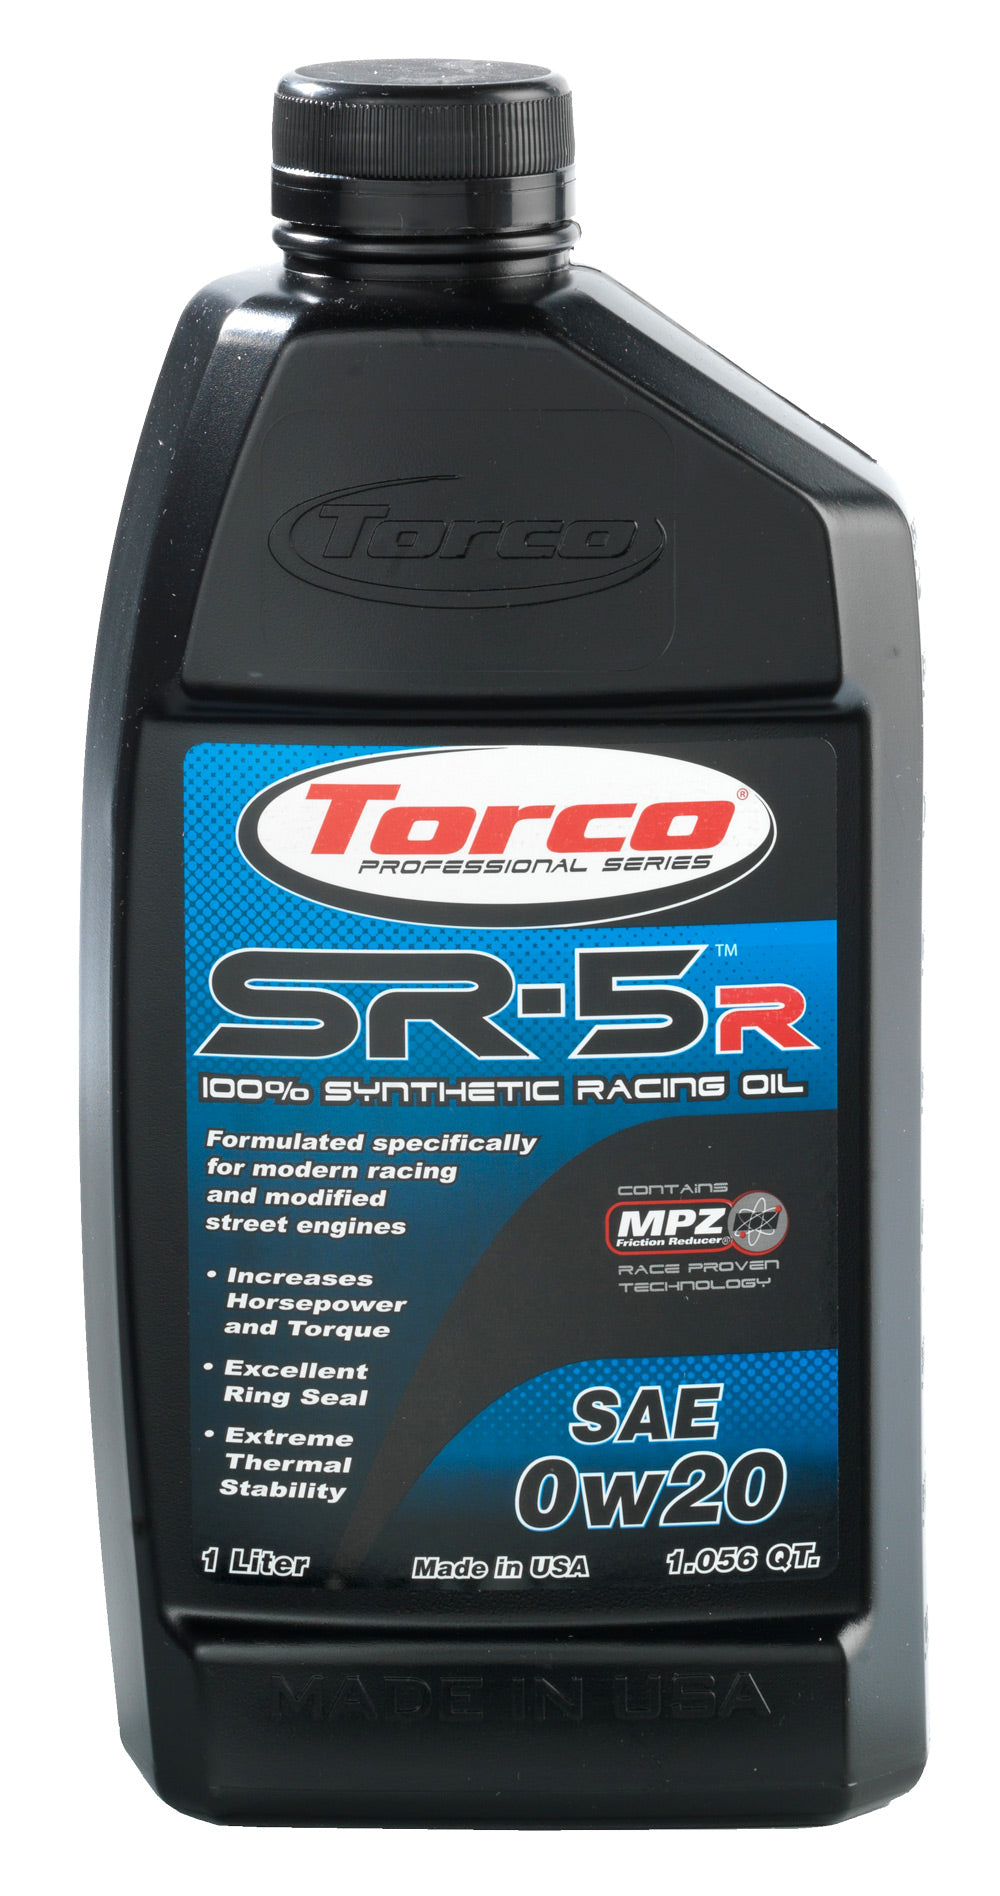 0w20 racing oil SR5 by Torco